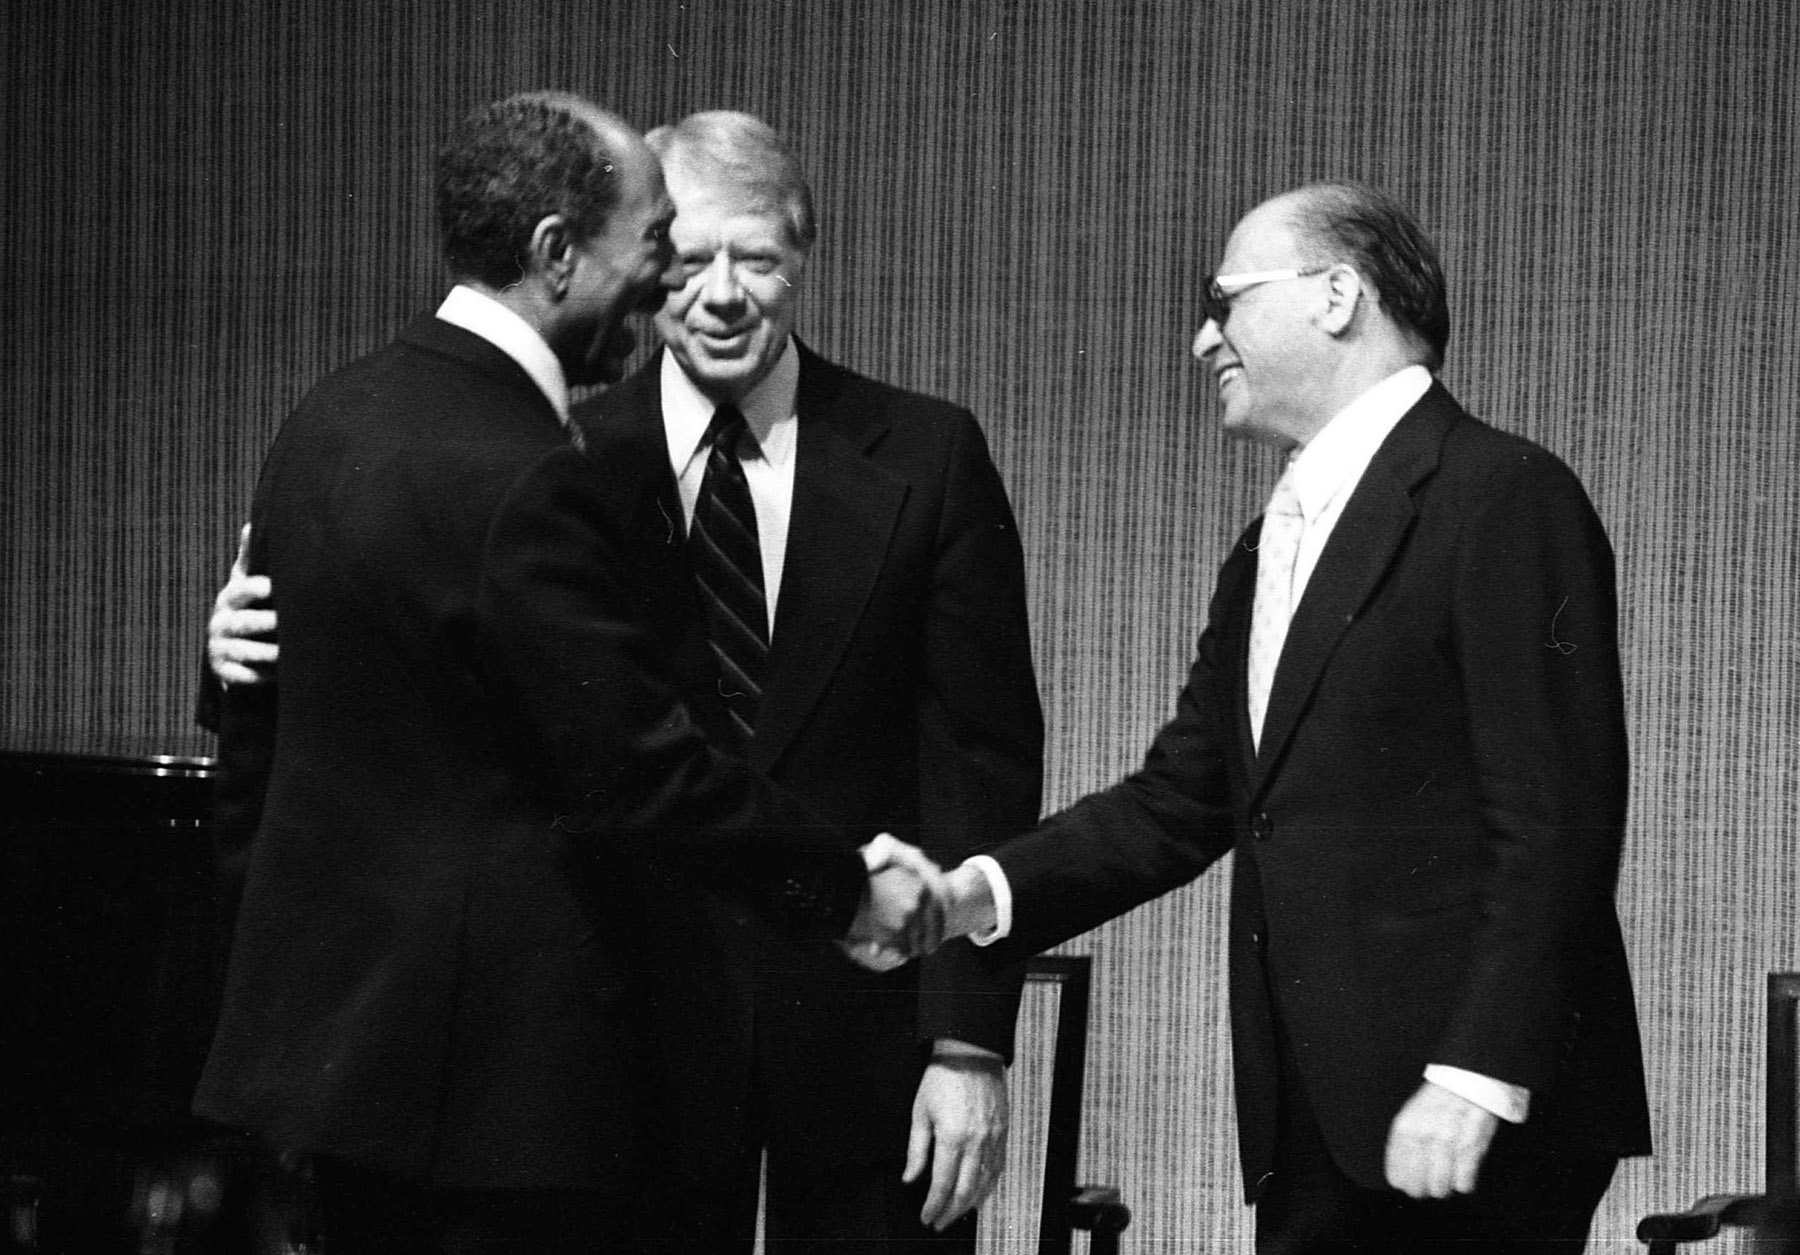 Laying the first stone. A 1979 file picture shows then Egyptian President Anwar Sadat (L) shaking hands with then Israeli Prime Minister Menachem Begin (R) in presence of then US President Jimmy Carter during dinner at the White House a day before the signing of the Egypt-Israel Peace Treaty. (DPA)